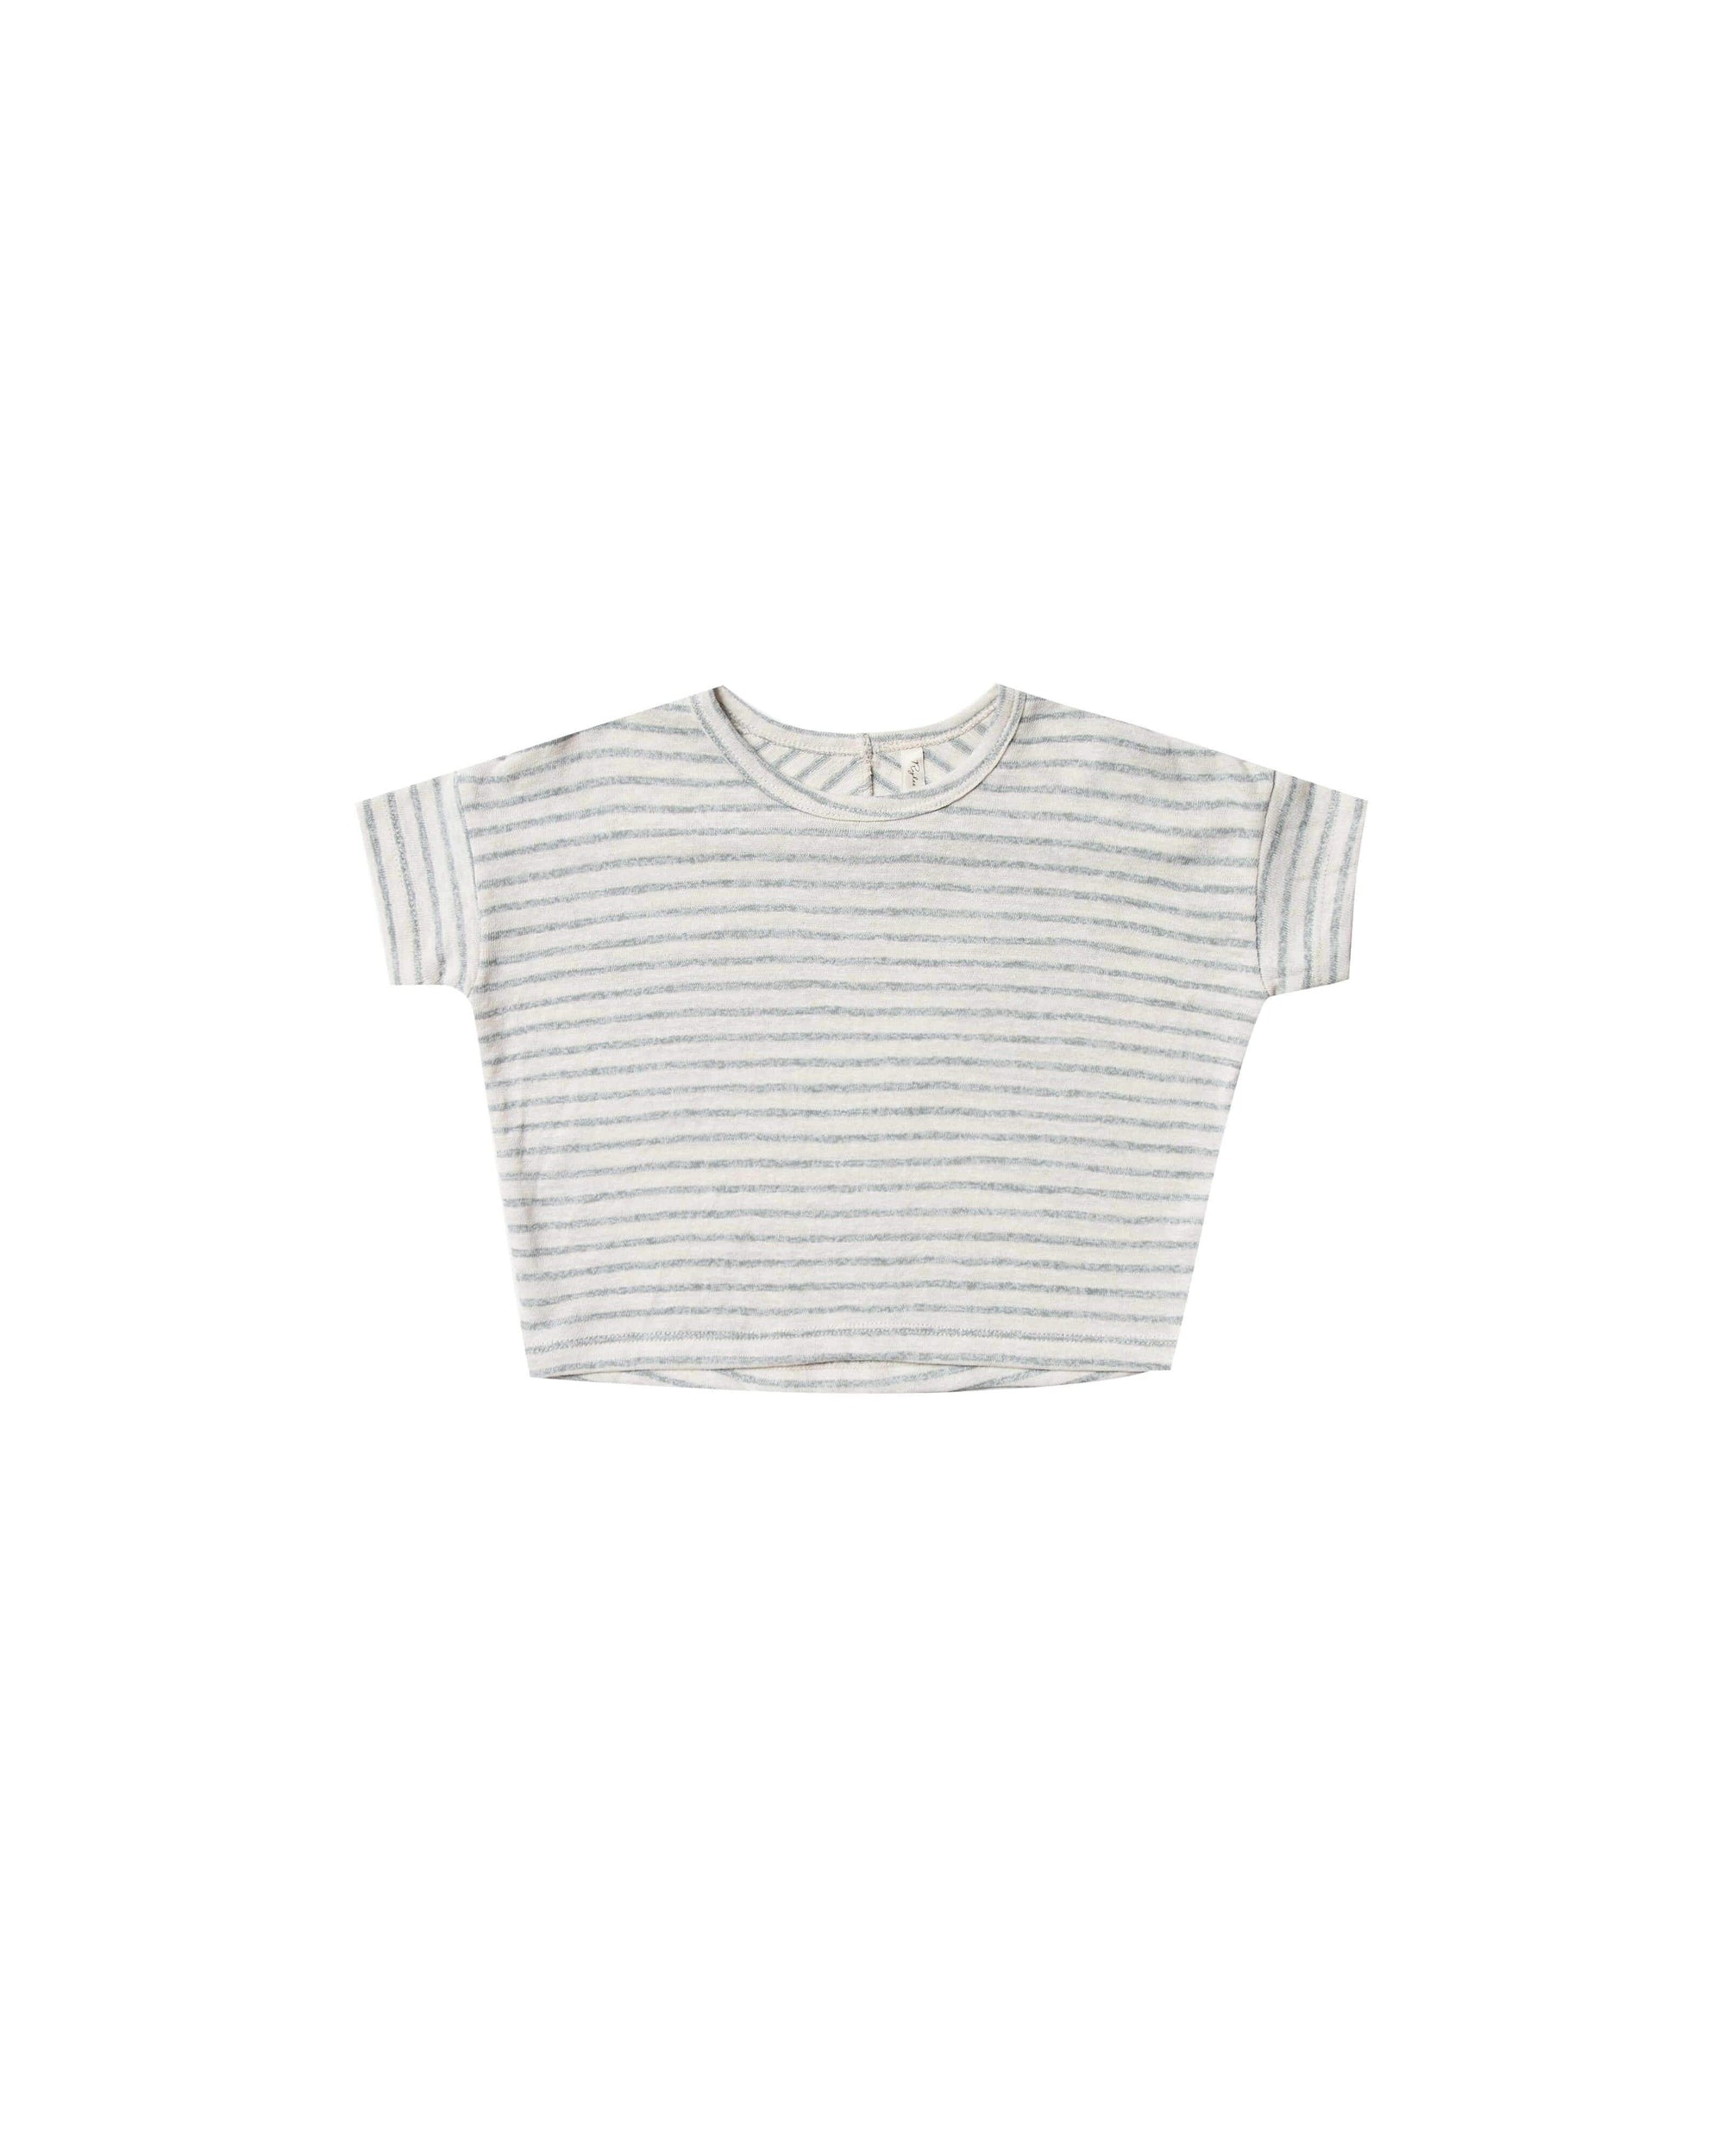 Rylee & Cru T Shirt Stripe Boxy Tee - Sea